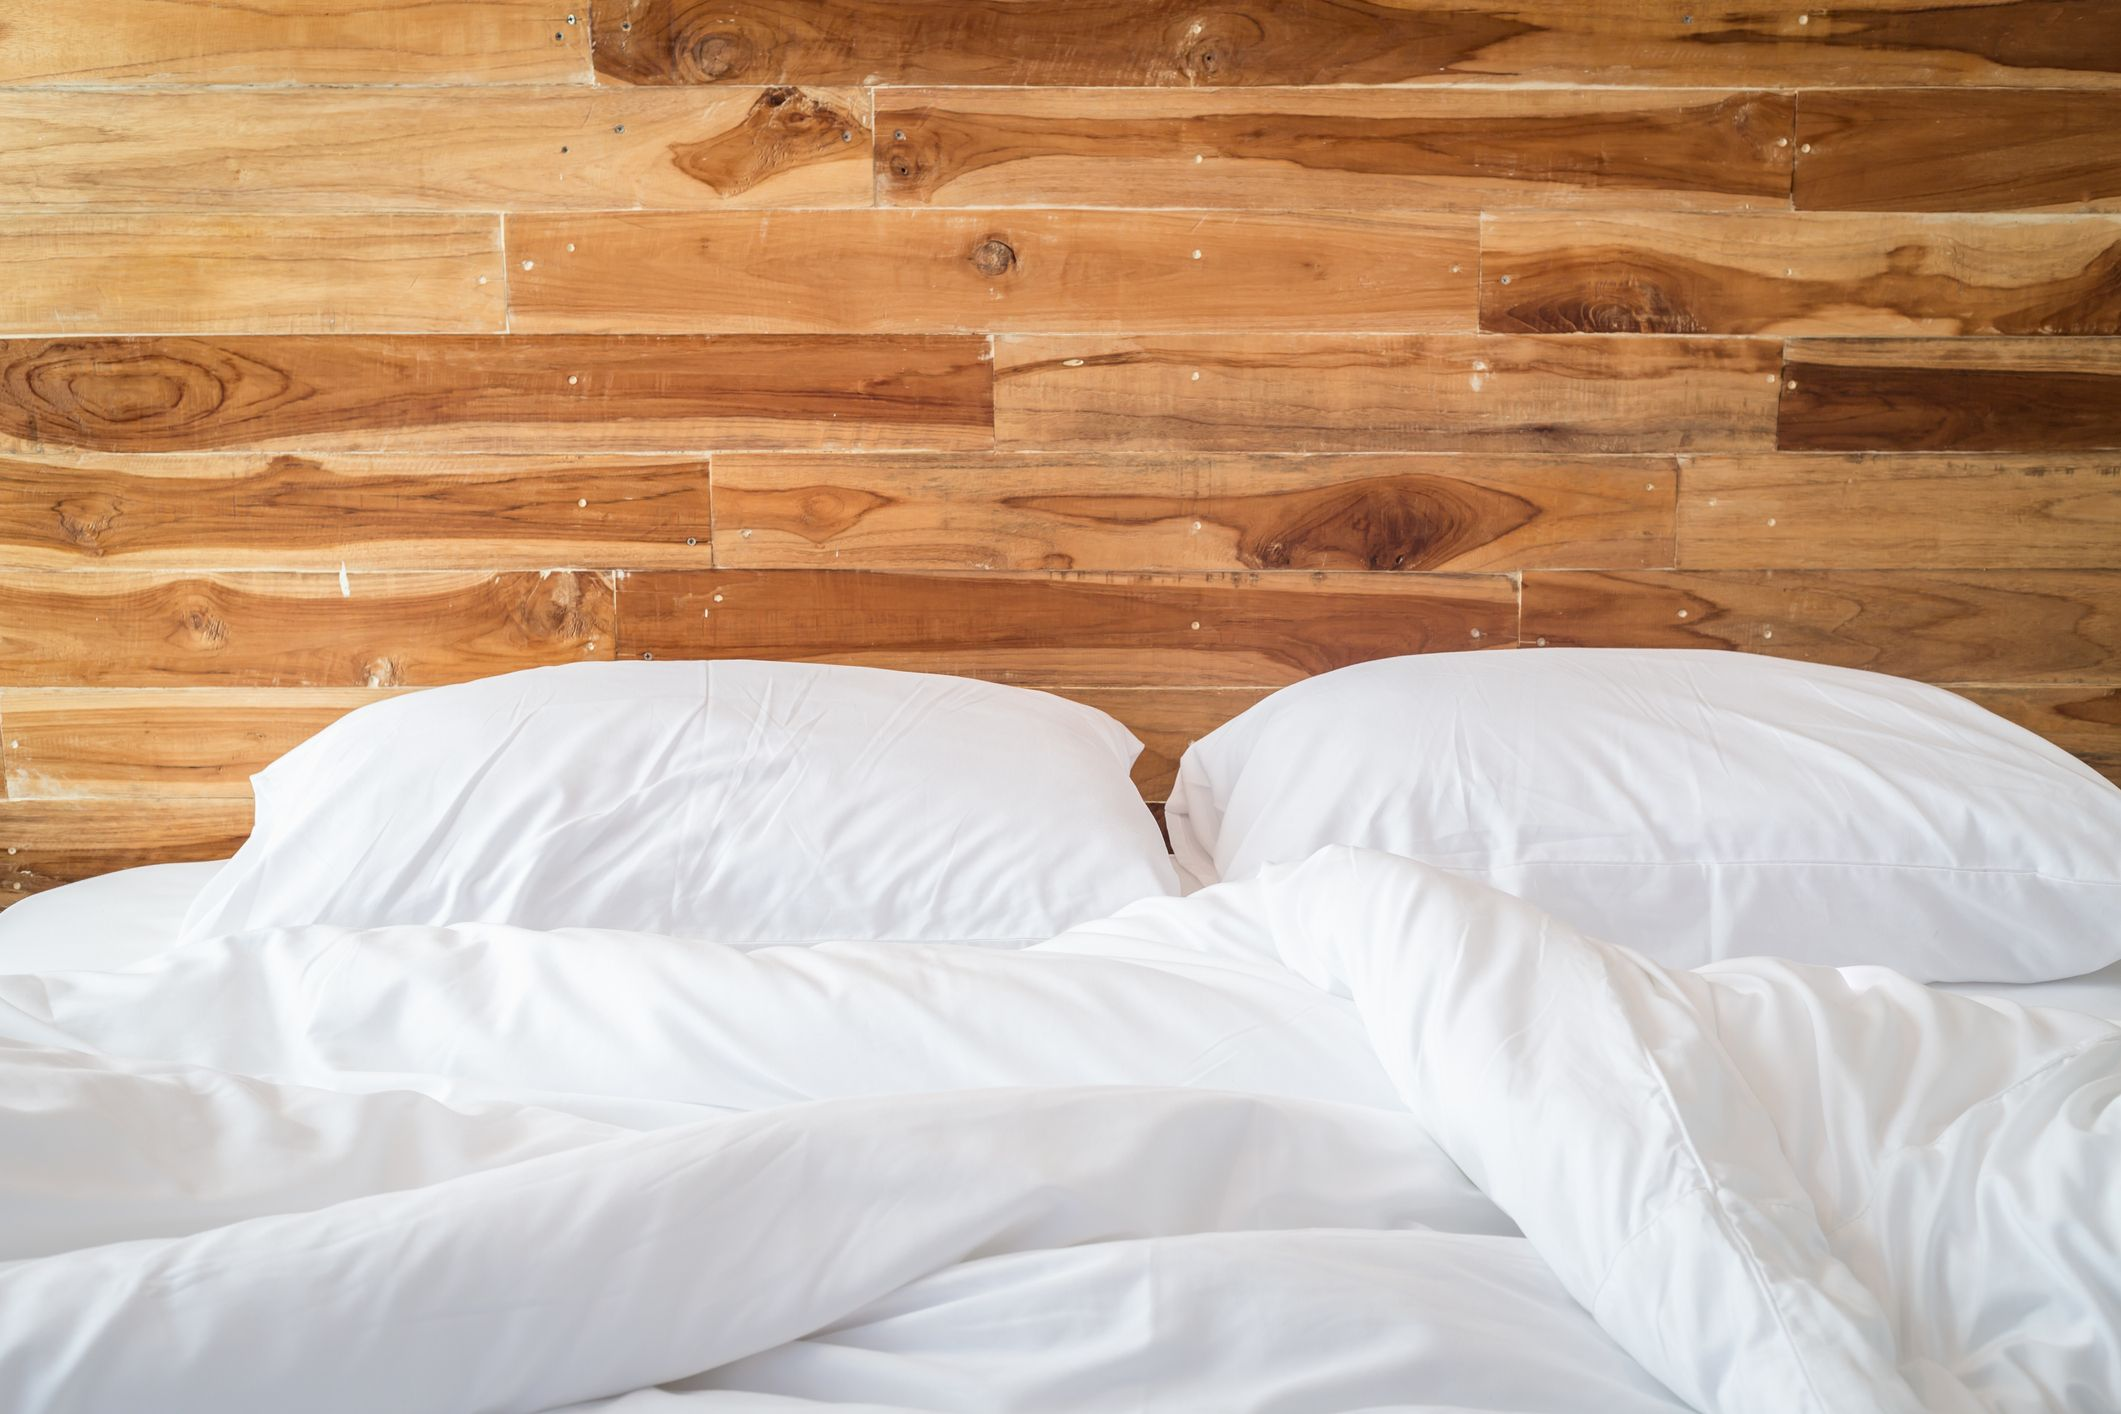 brooklyn bedding s new pillows are designed to help you stay cool at night